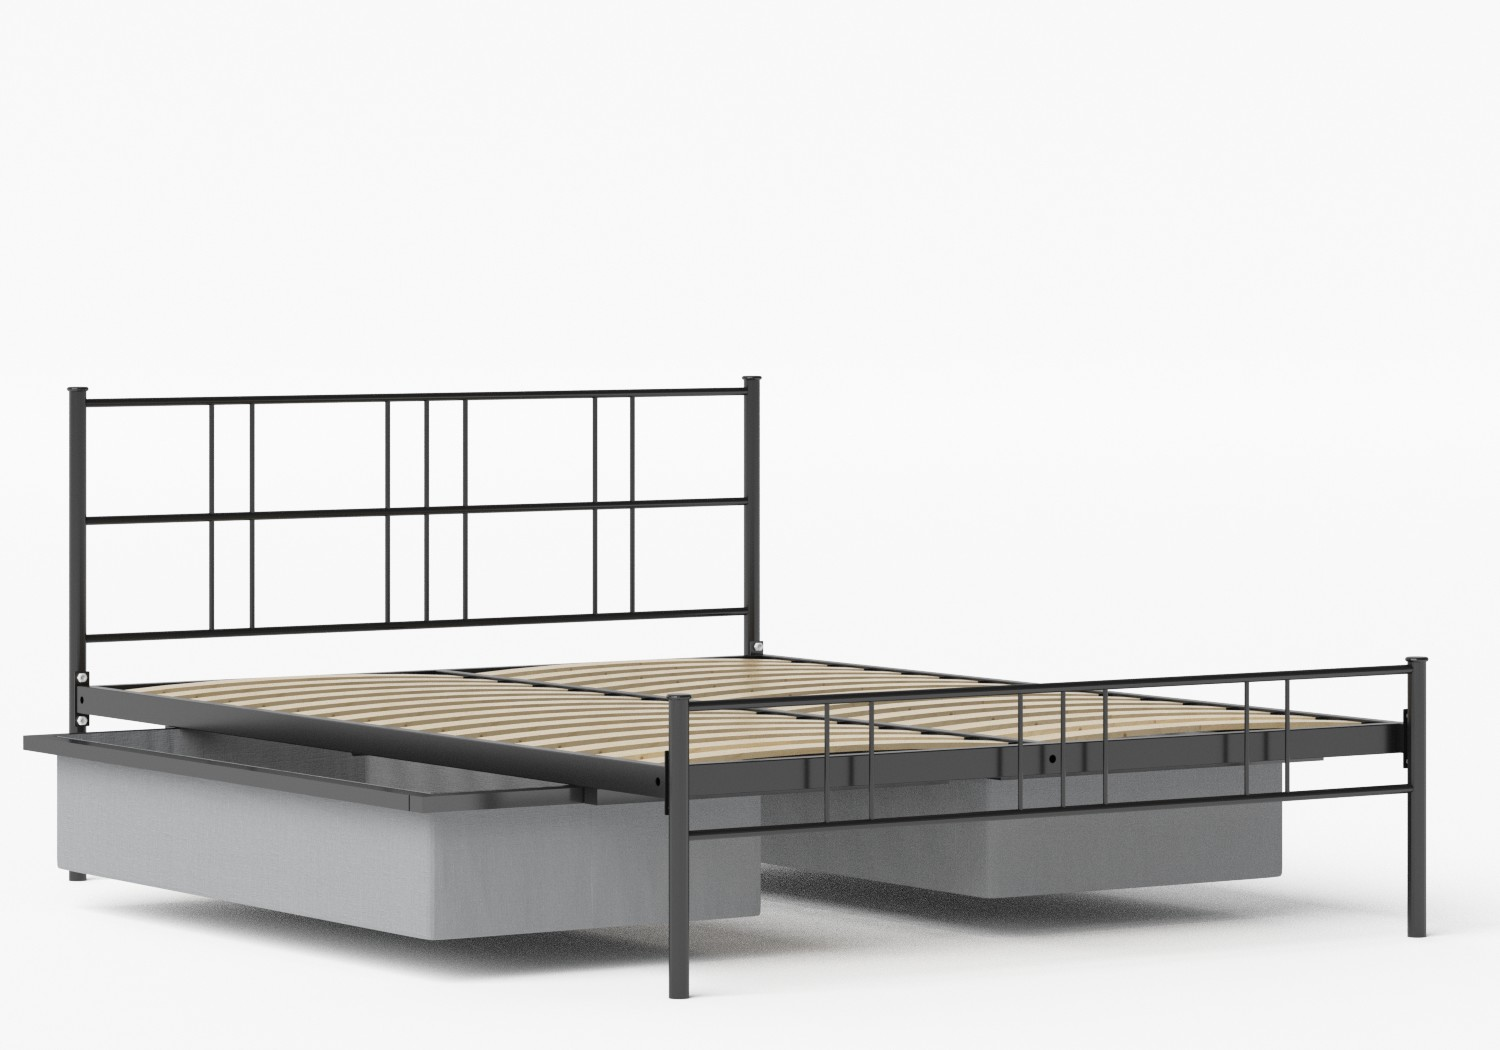 Mortlake Iron/Metal Bed in Satin Black shown with underbed storage